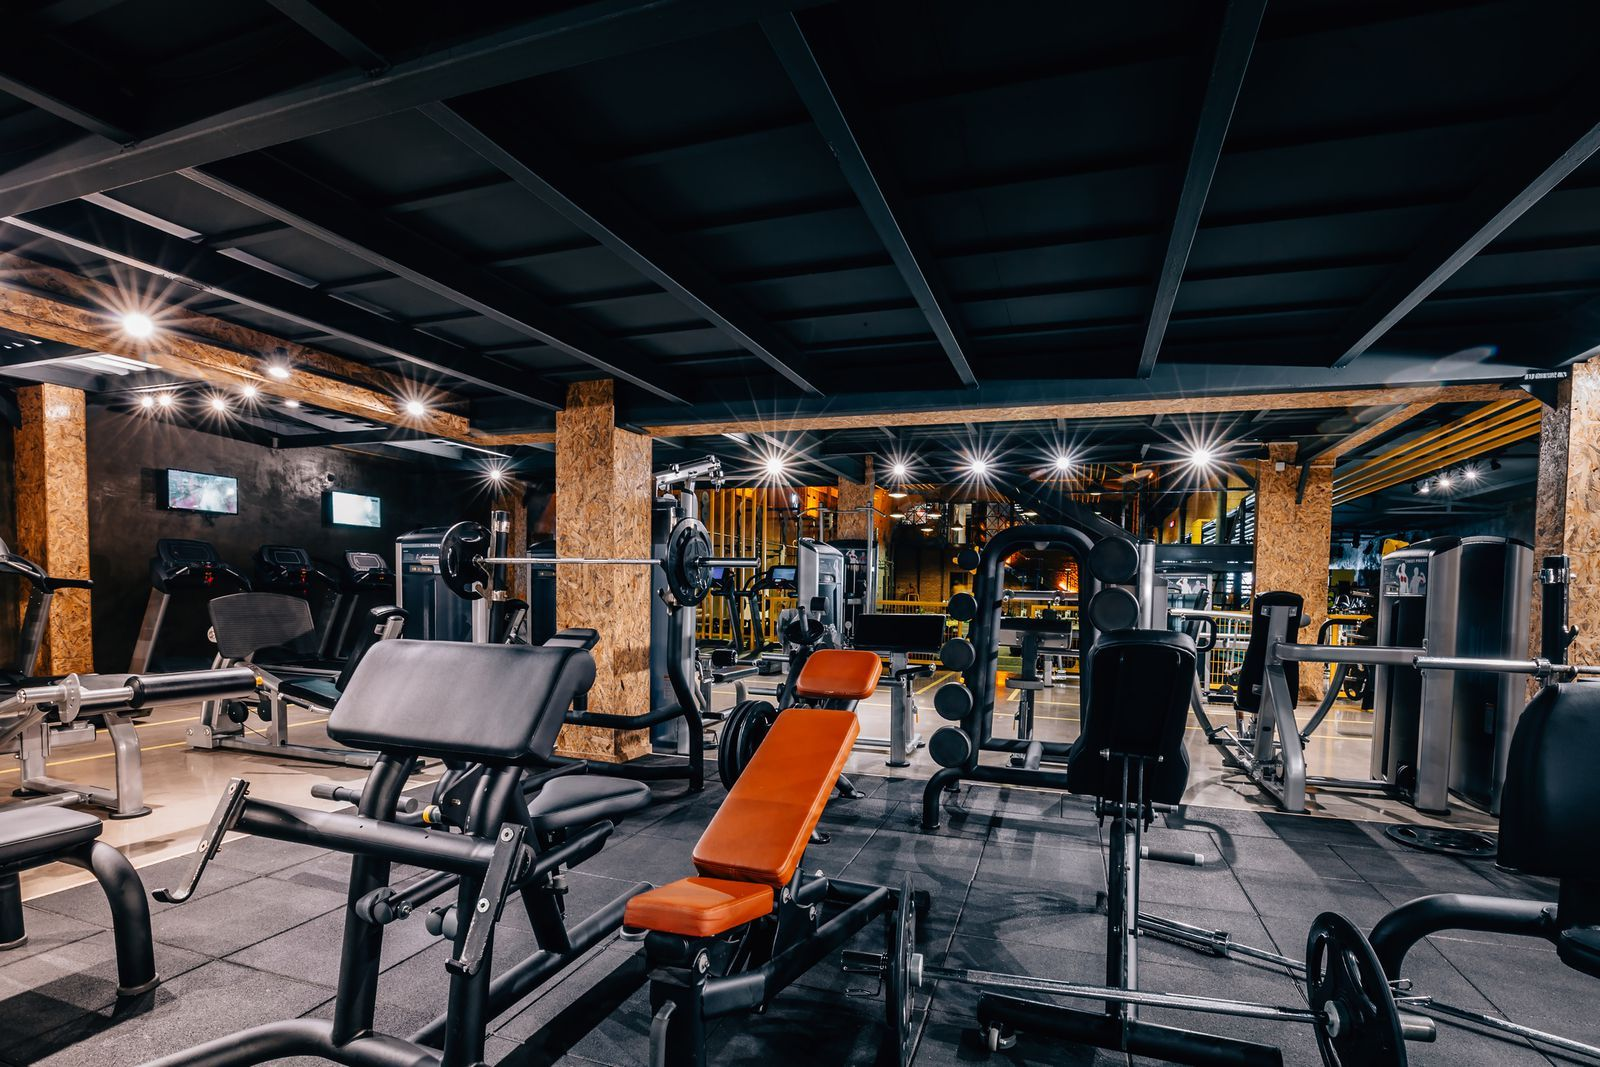 Join Our Search for the UK's Best Gym (With images) Home